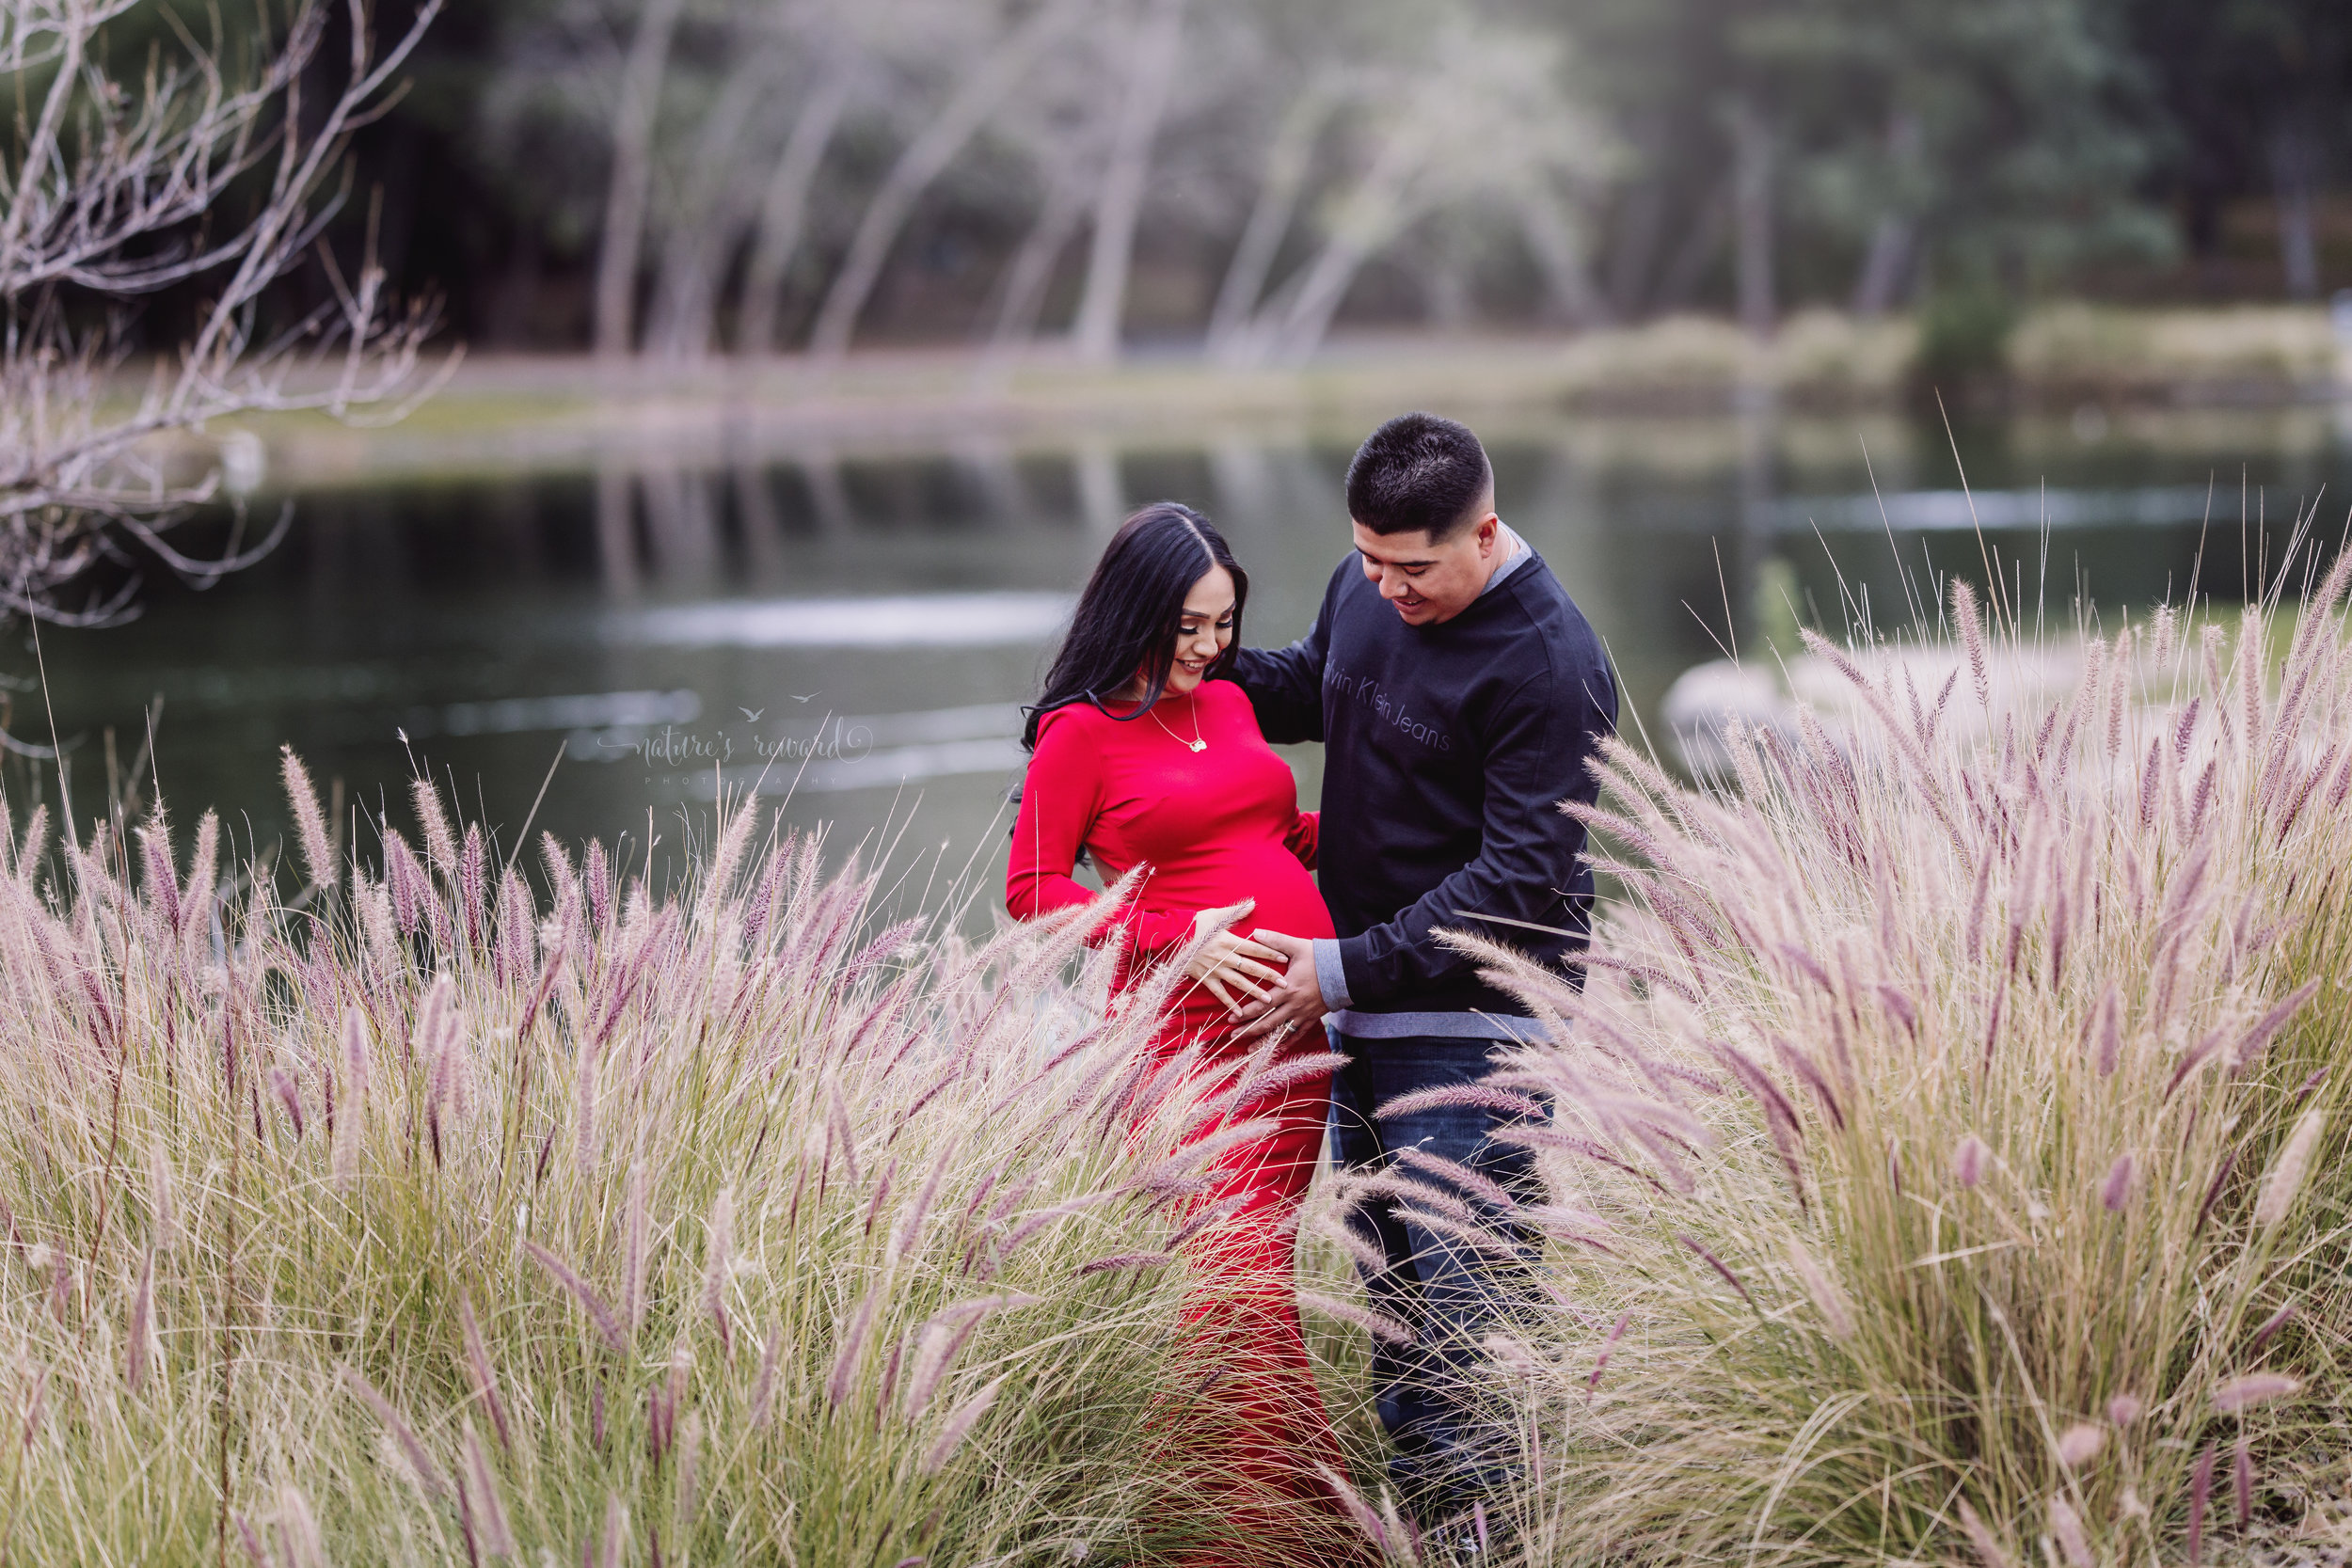 With joy and pure happiness they celebrate their baby by the water and in the long grass in this maternity portrait of mom to be in a beautiful red maternity gown and her husband in dark wash jeans and long sleeve shirt in this portrait by San Bernardino Based Photographer Nature's Reward Photography.